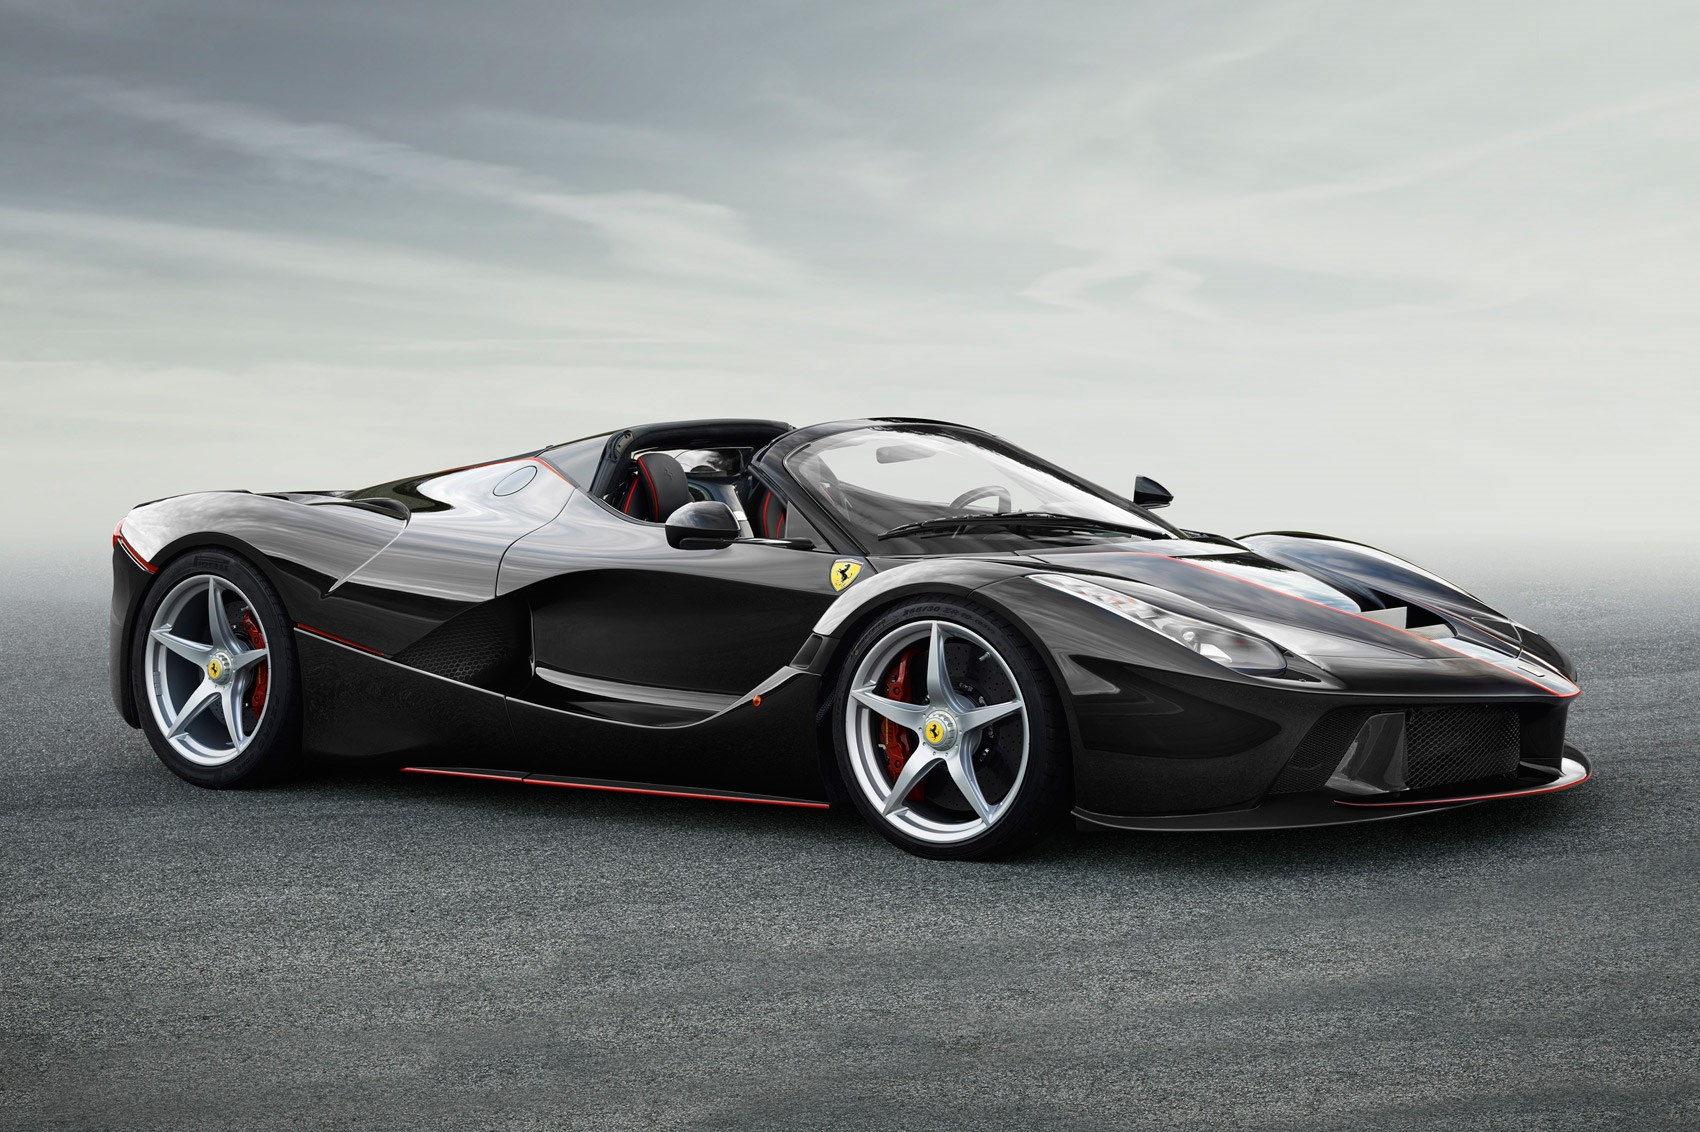 laferrari aperta at paris 2016 details and pictures of the open top laferrari by car magazine. Black Bedroom Furniture Sets. Home Design Ideas